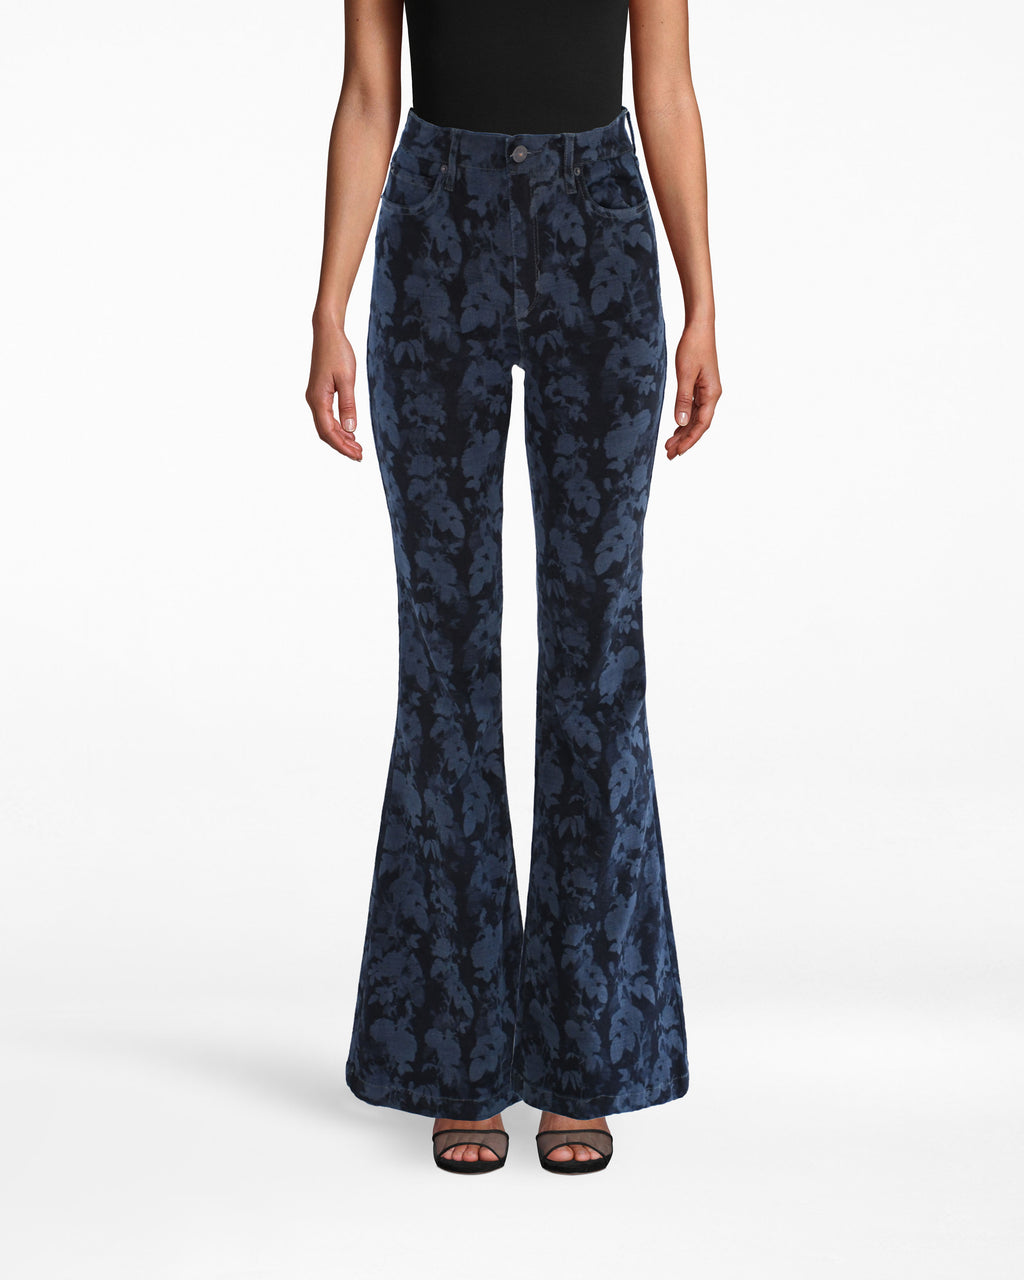 LP18062 - PRINTED DENIM BELL BOTTOM PANT - bottoms - pants - BELL BOTTOMS ARE BACK. THSE FLORAL DENIM PANTS ARE PERFECT FOR COOL SUMMER NIGHTS AND EASING INTO FALL. THIS WIDE LEG STYLE ELONGATES YOUR LEGS FOR AN ULTRA FLATTERING FIT. Add 1 line break STYLIST TIP: WEAR WITH A WHITE TOP AND THE MATCHING JACKET FOR A COMPLETE LOOK.